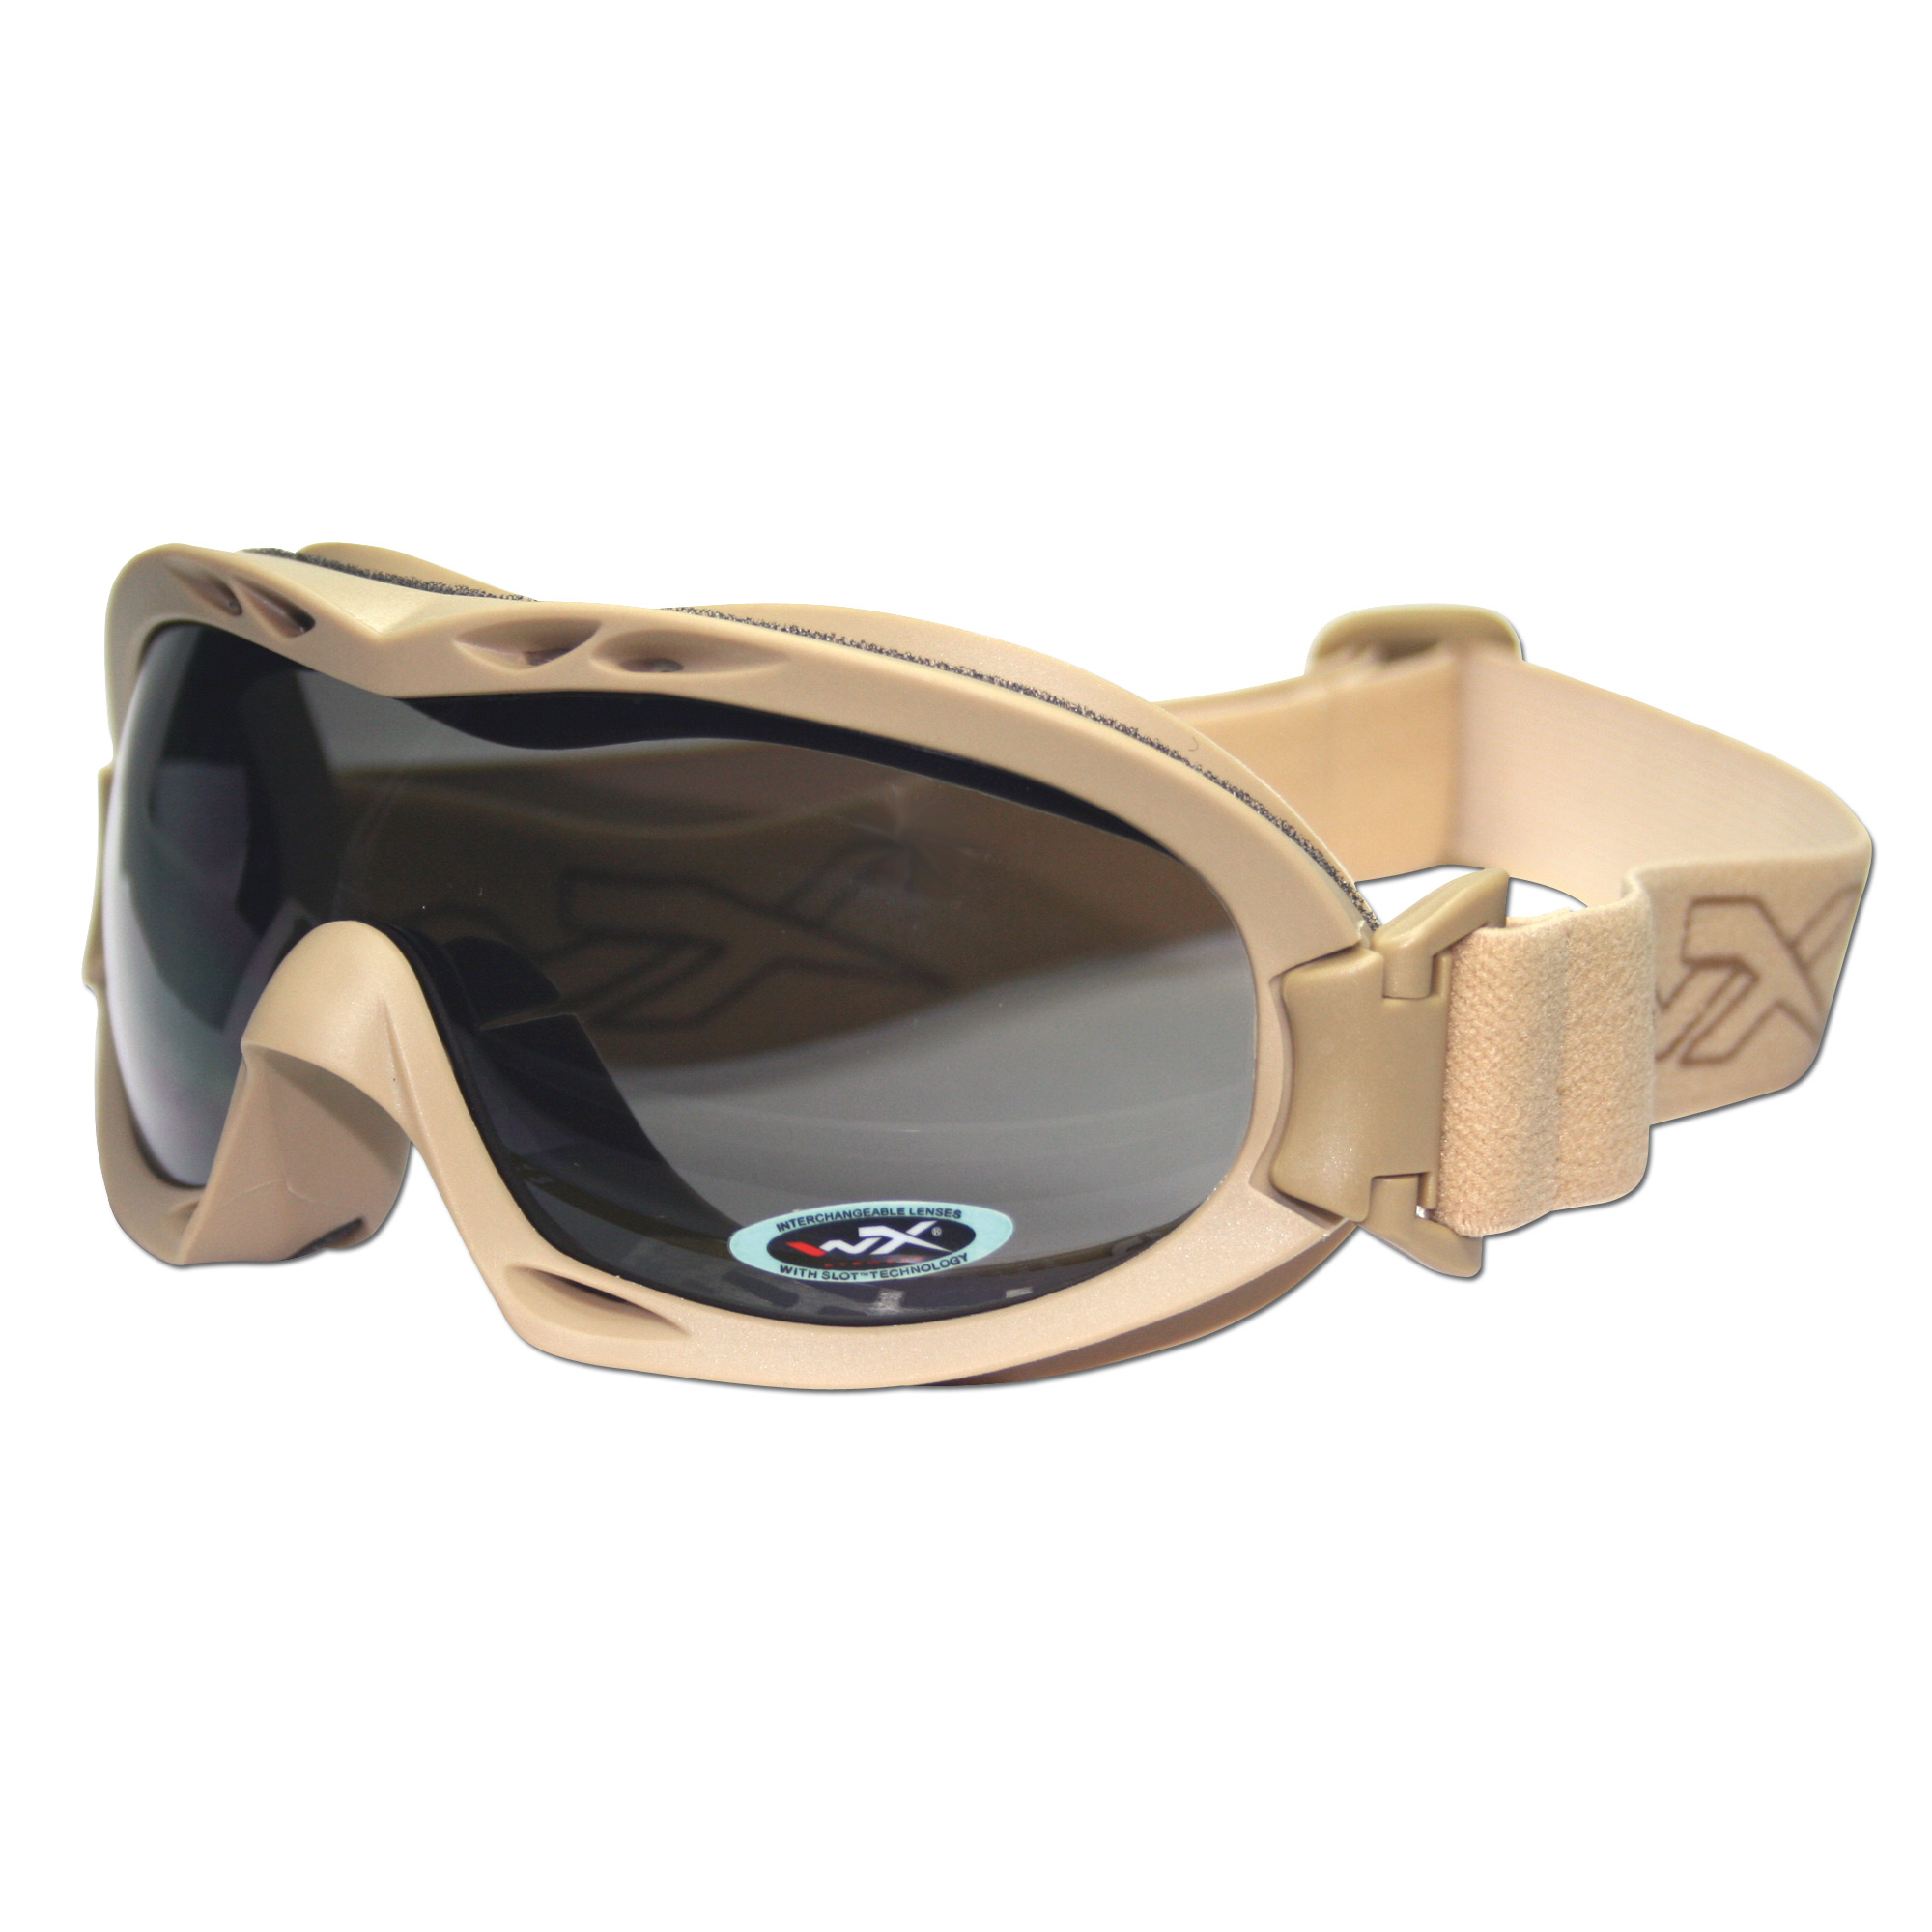 Brille Wiley X Nerve tan